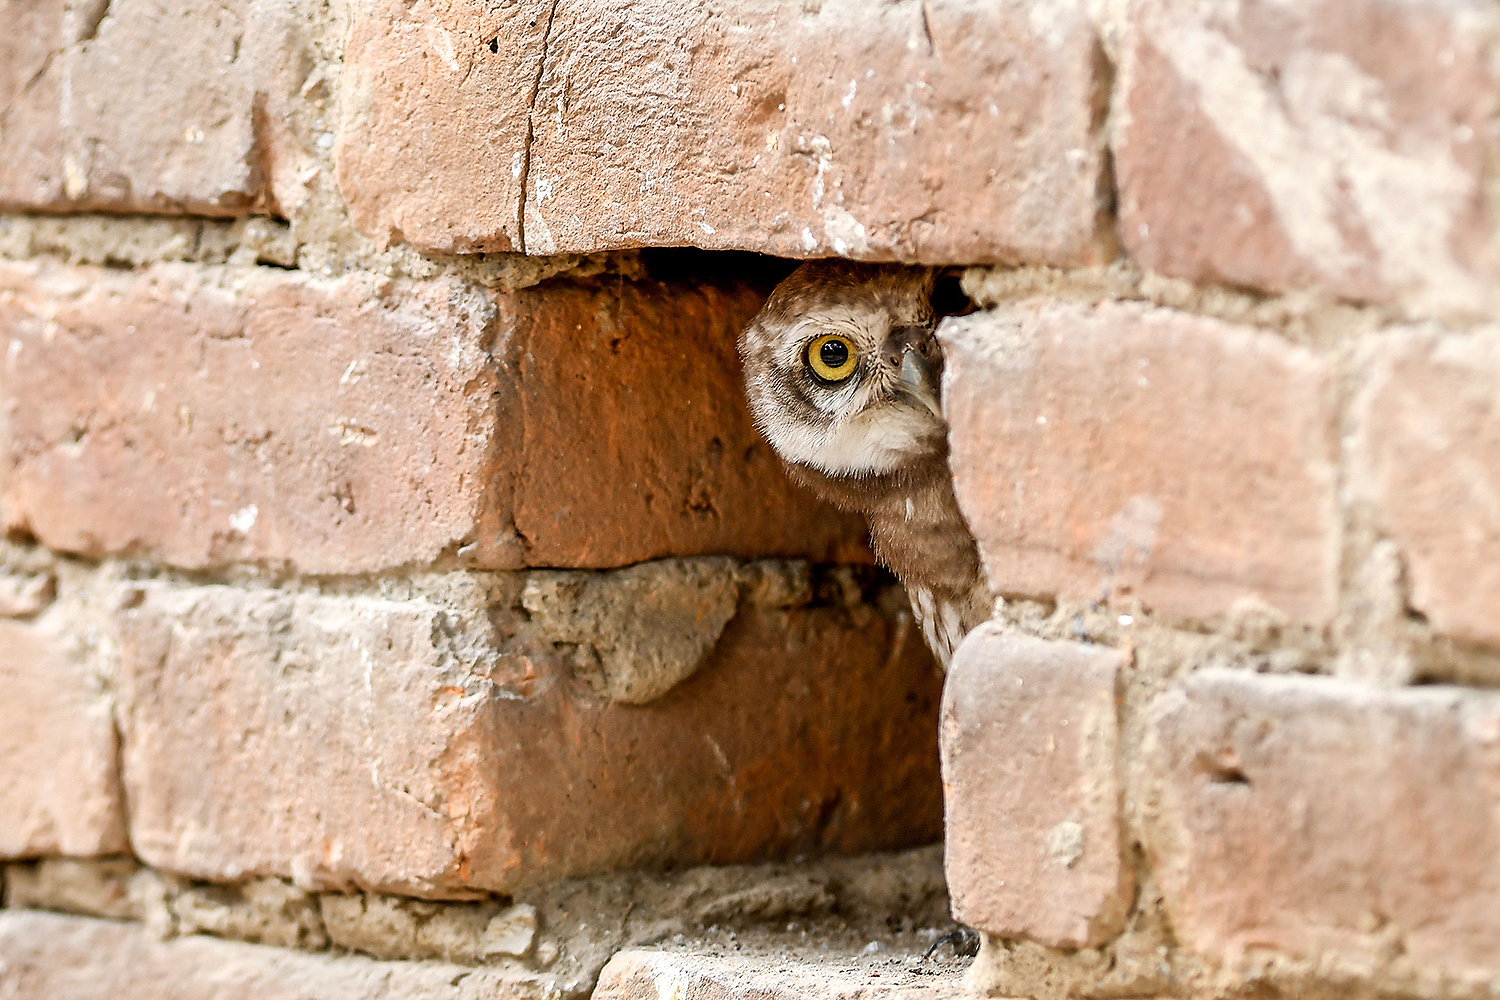 A spotted owlet takes a rest in a putlock hole of a wall in Kathmandu, Nepal, on May 10. PRAKASH MATHEMA/AFP via Getty Images